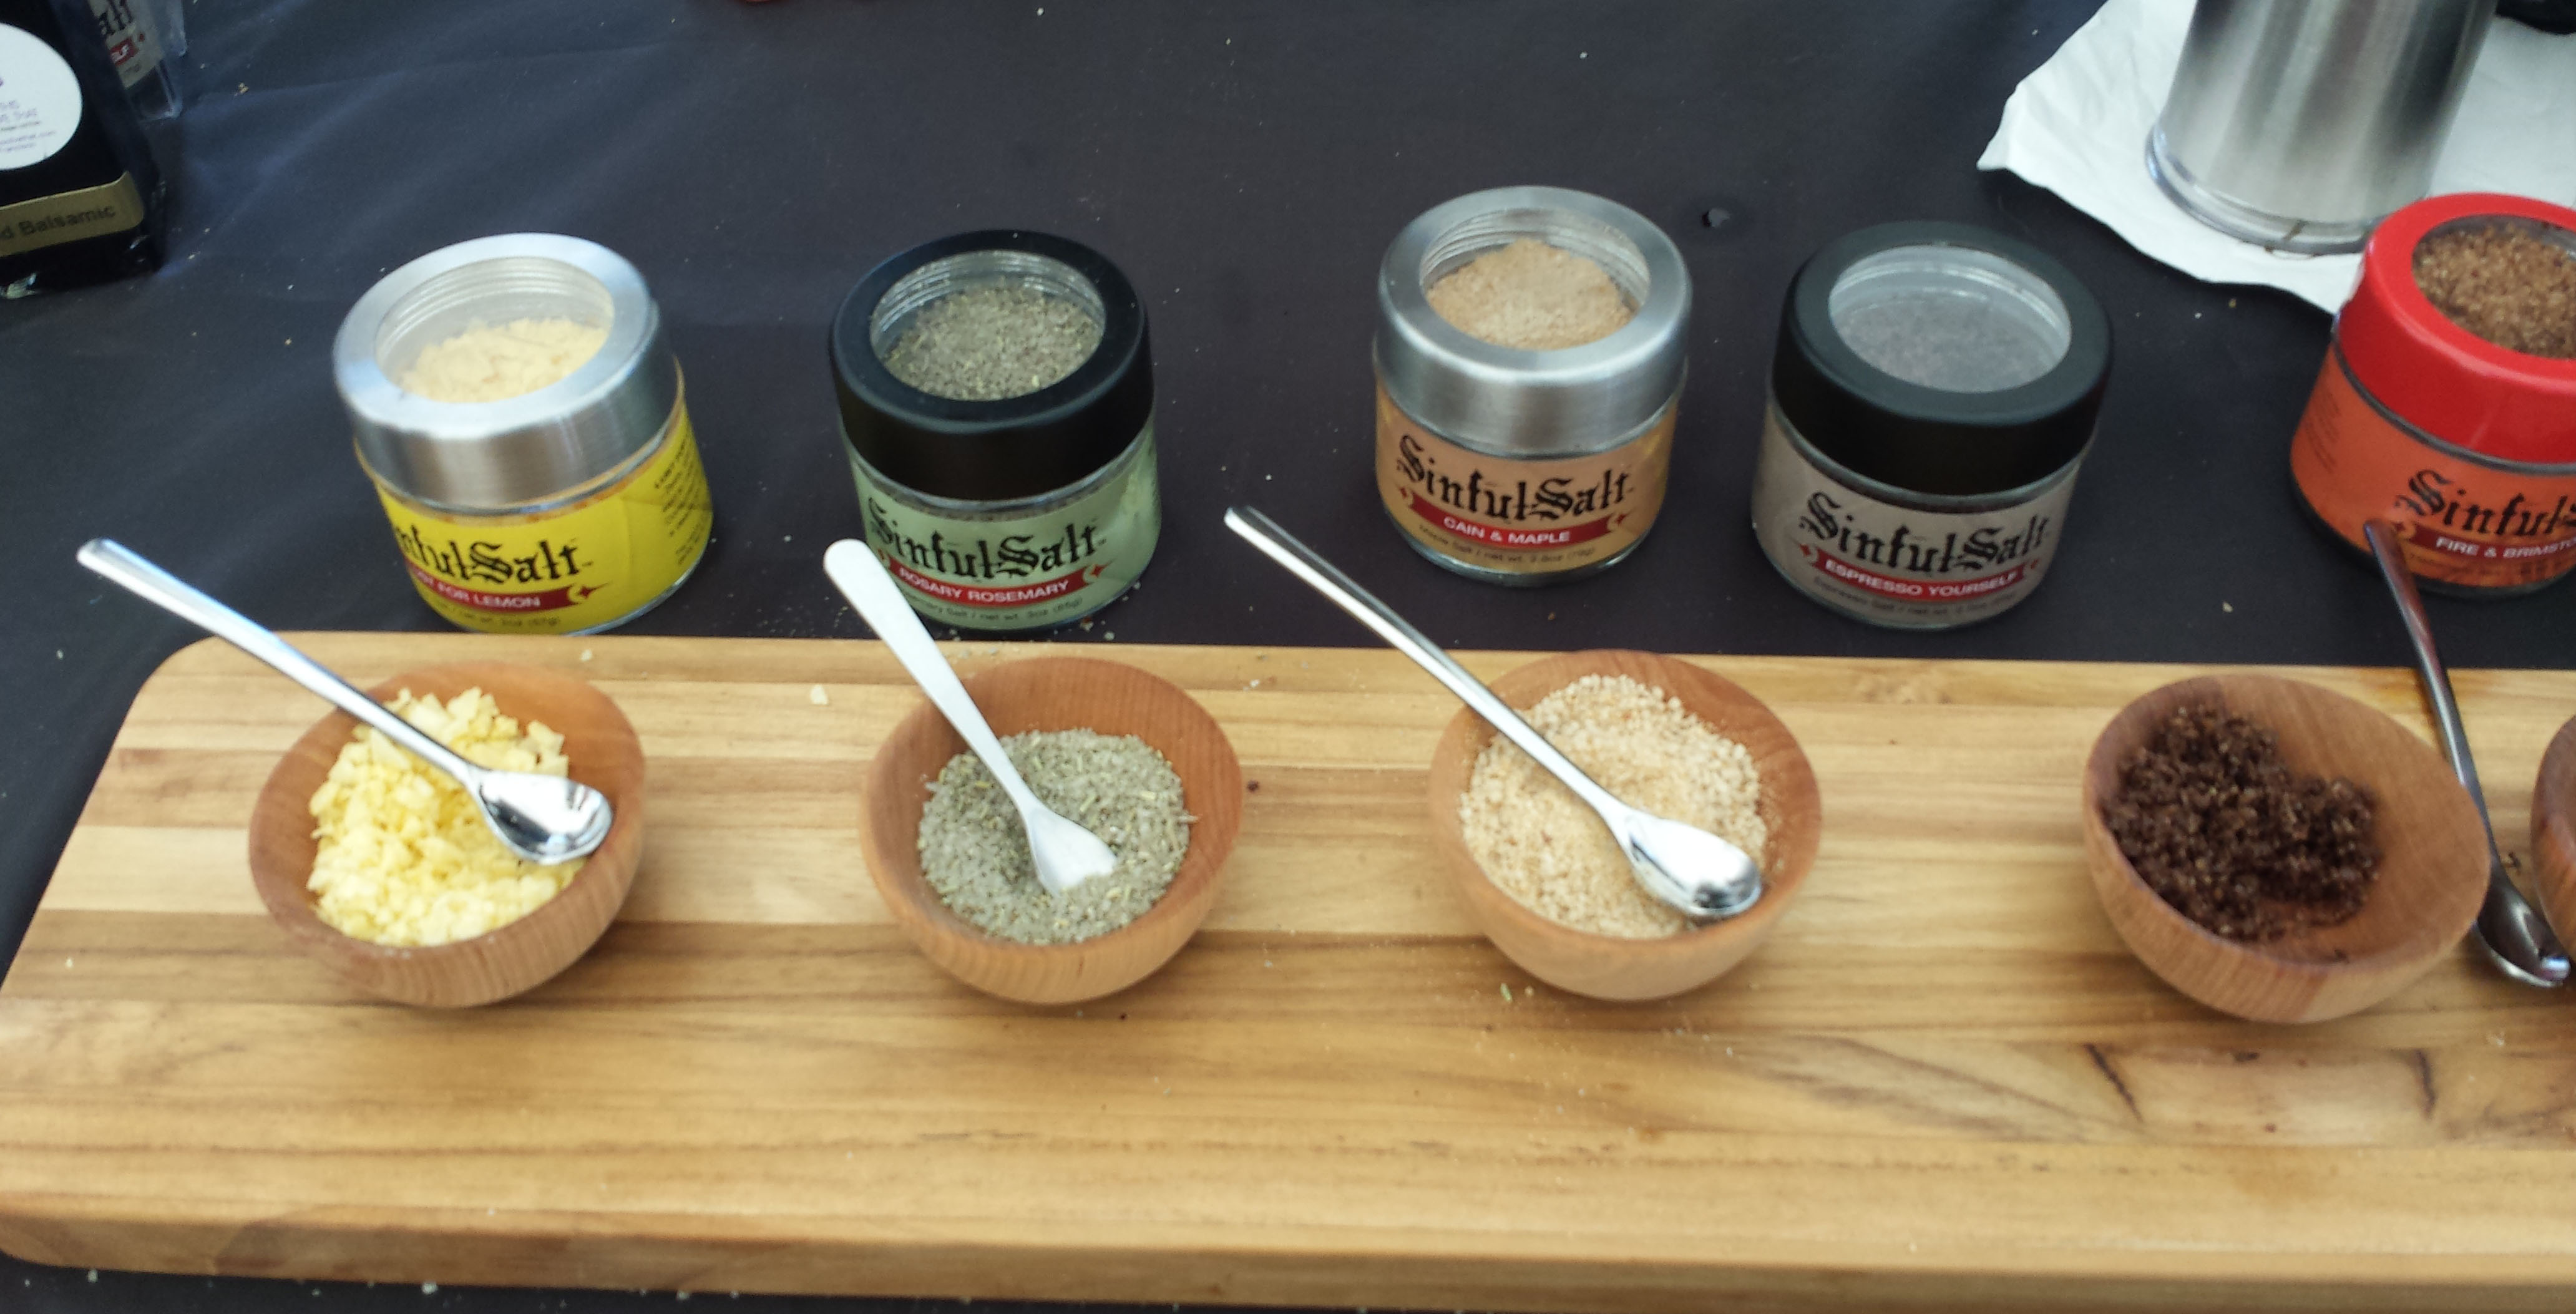 Sinful Salt: Flavors included Rosemary, Lemon, Maple, Espresso, & Habanero. The Espresso & Habanero were Served on Chocolate